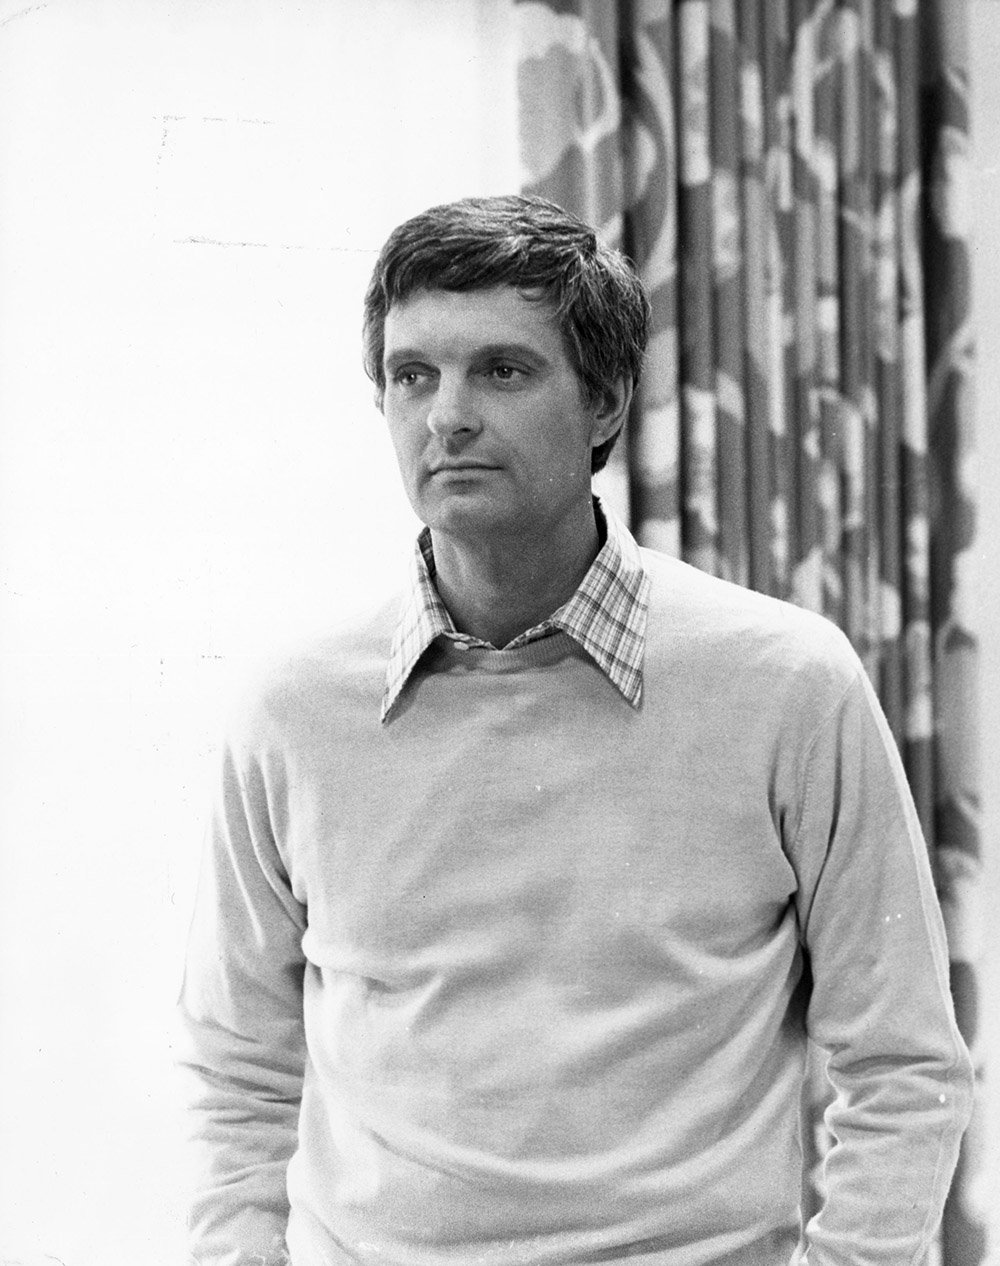 Alan Alda in his younger years. I Image: Getty Images.